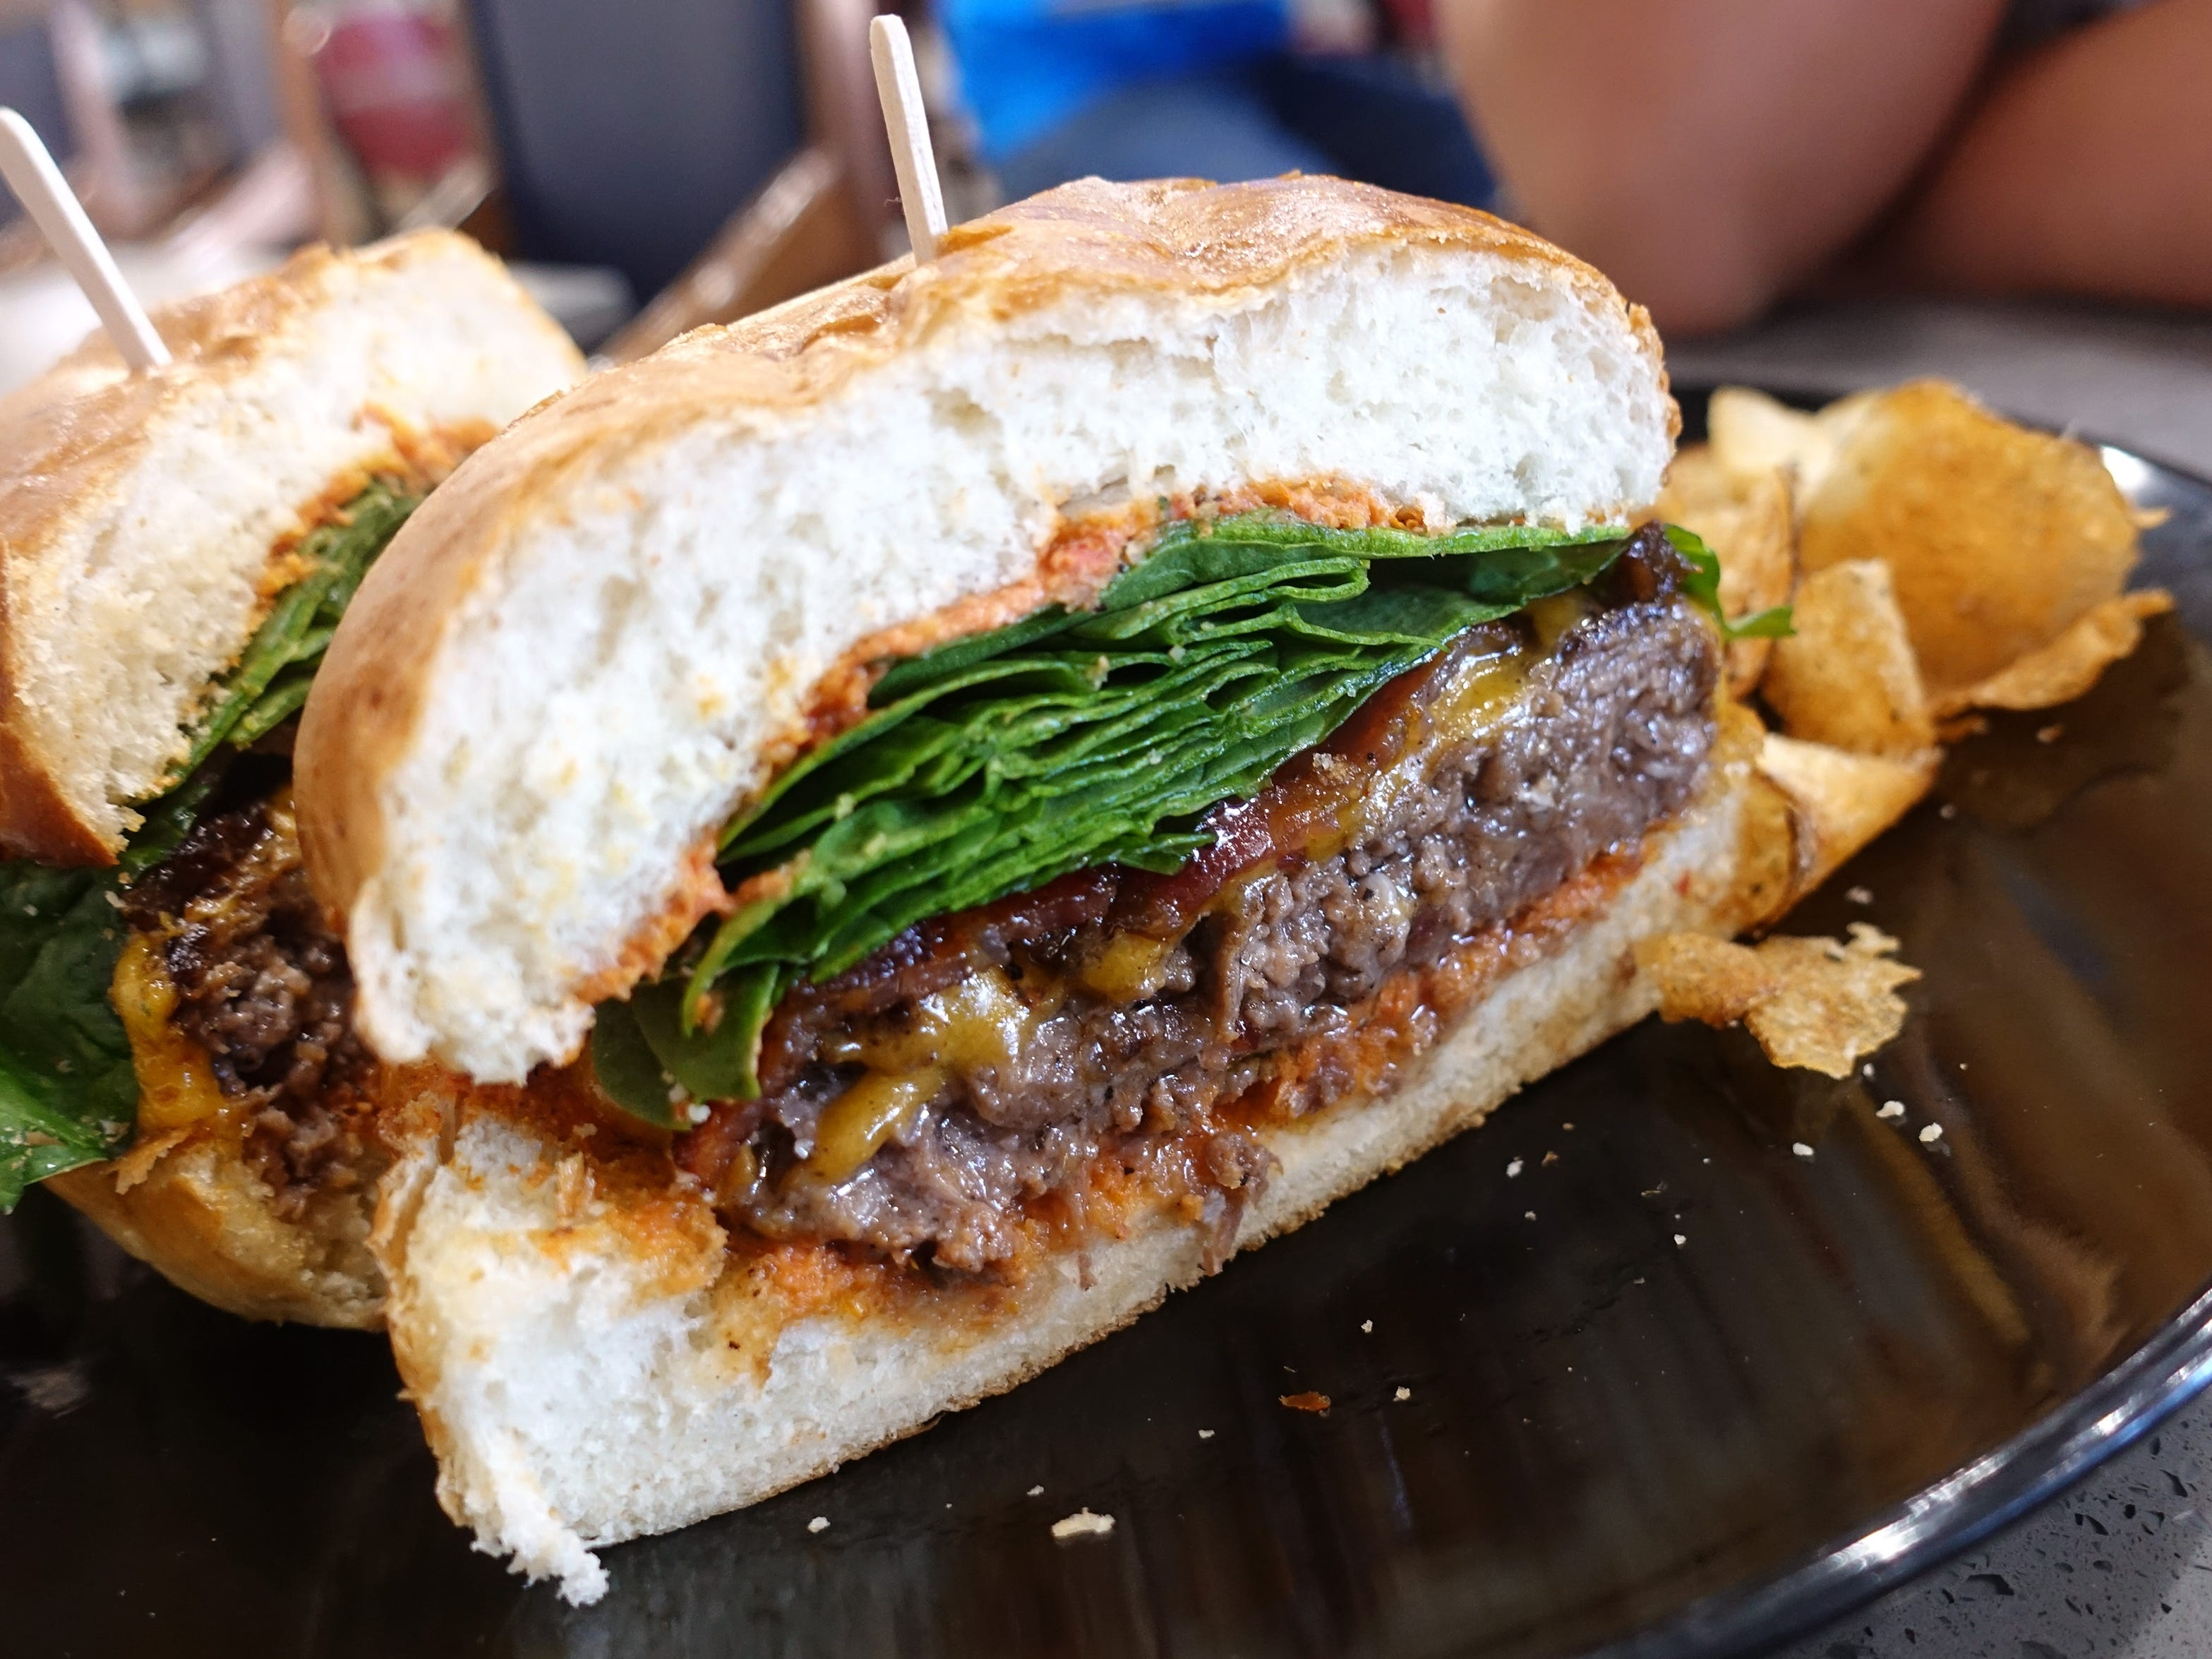 'The Obligatory Burger' with Angus patty, candied bacon, cheddar, spinach and super-secret sauce at Sweetest Season Artisan Eatery in Tempe.